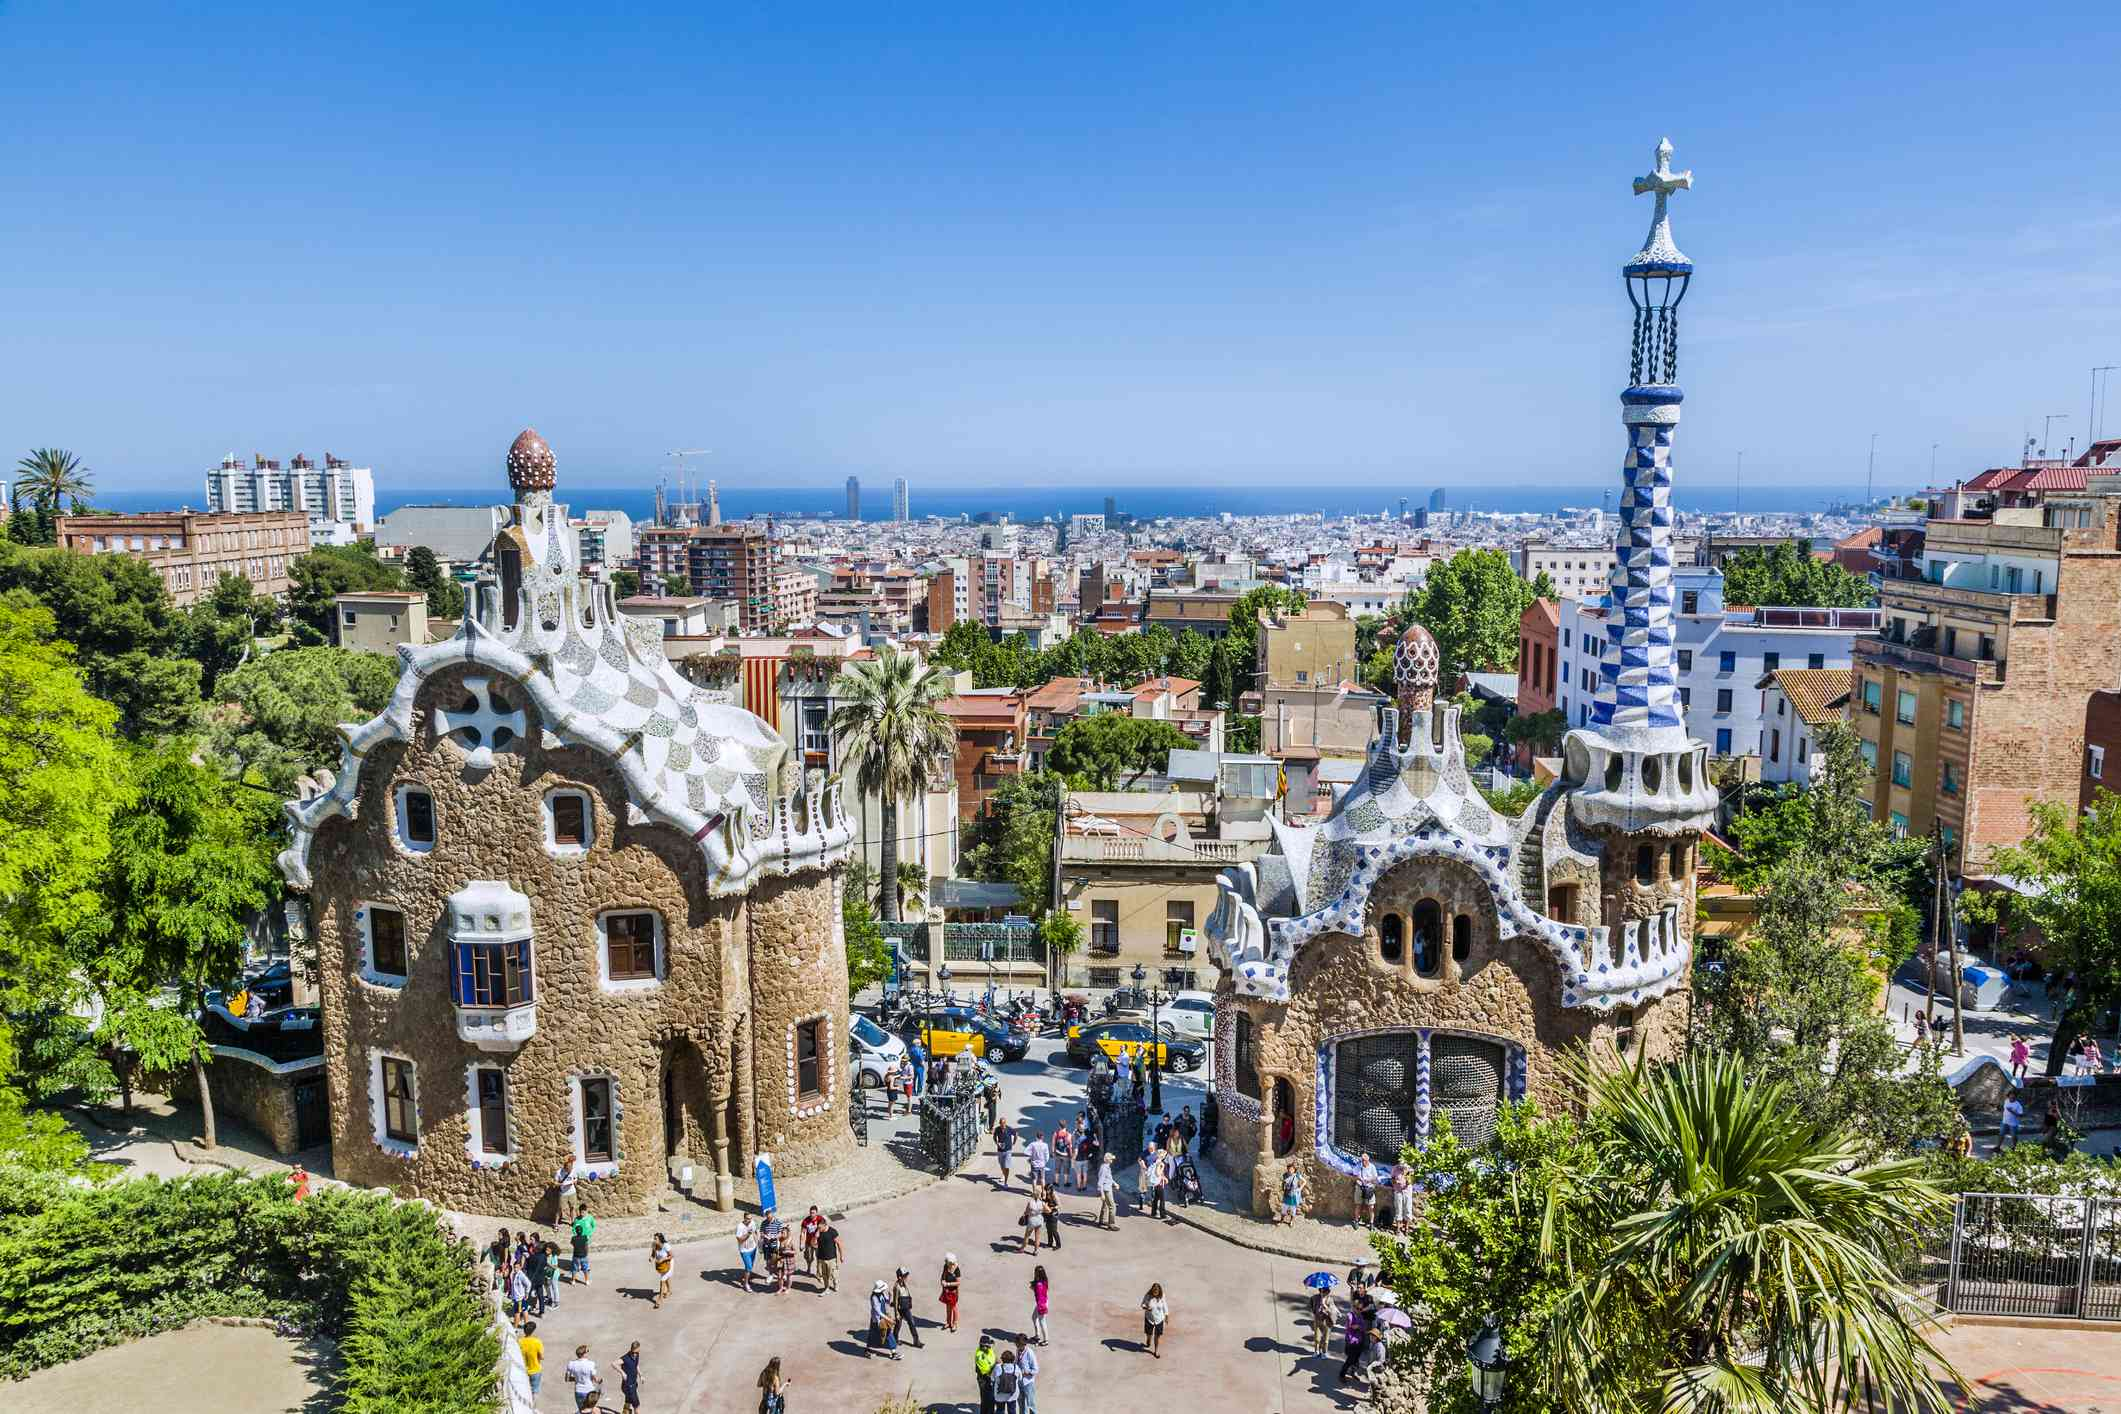 The colorful and whimsical buildings and manicured trees of Parc Güell with the ocean in the distance and a clear, blue sky above